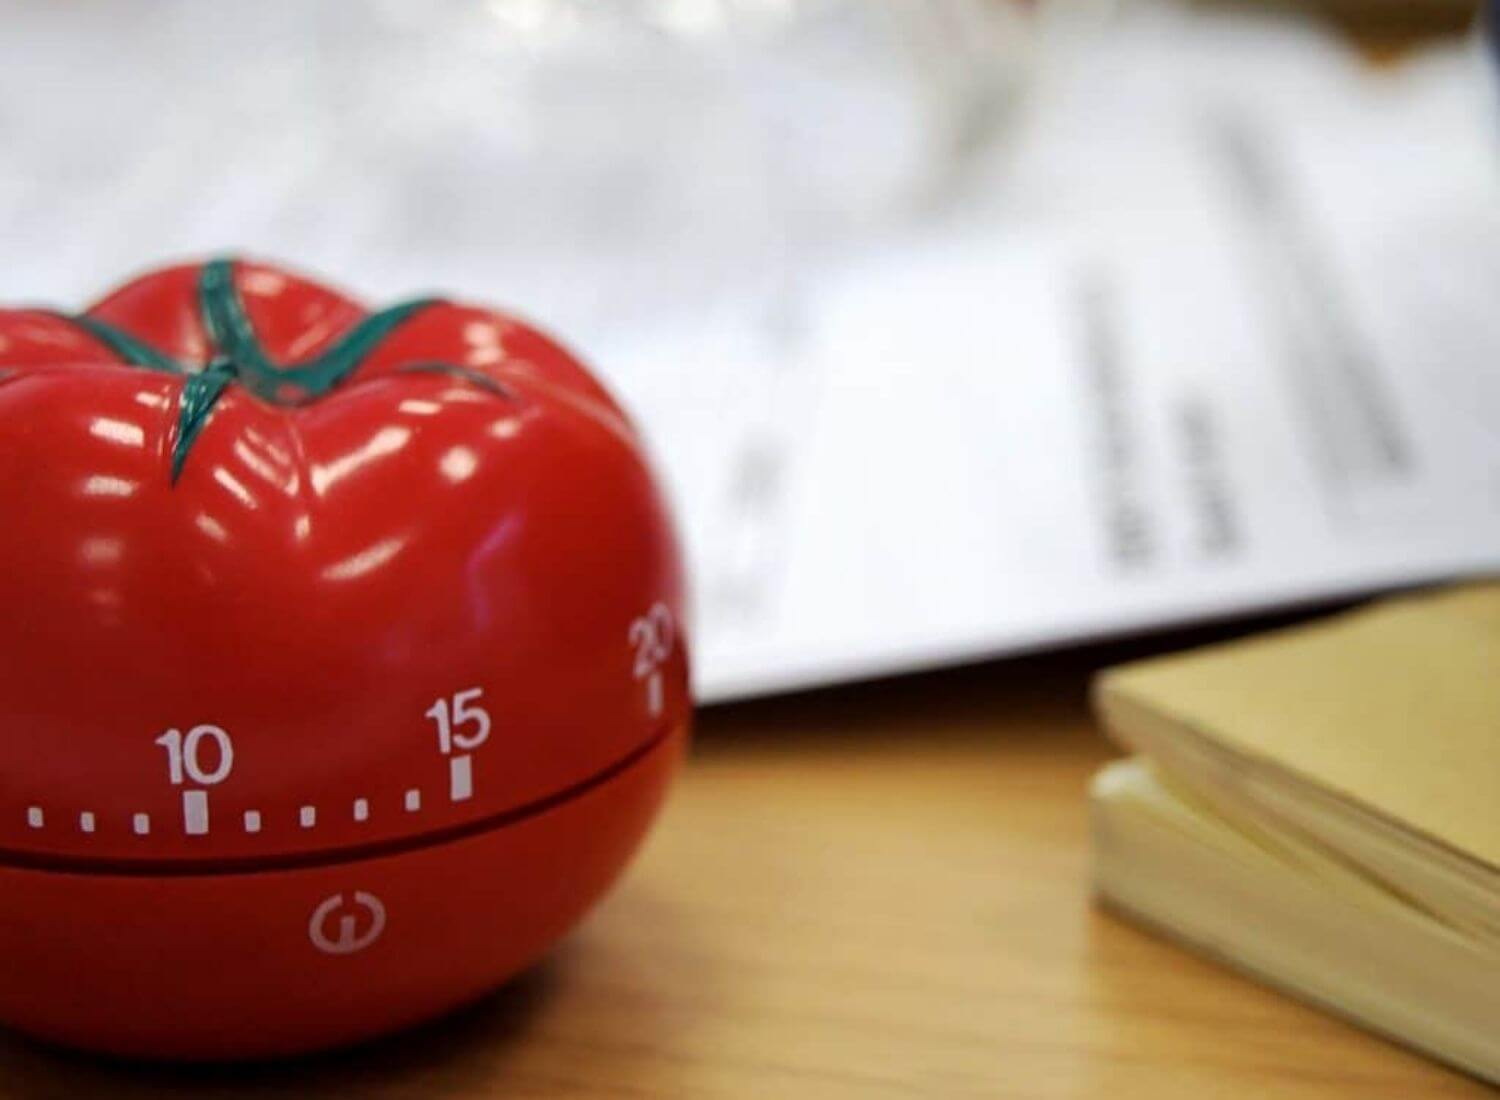 The Pomodoro Technique: Ace Your Exams With Full Efficiency